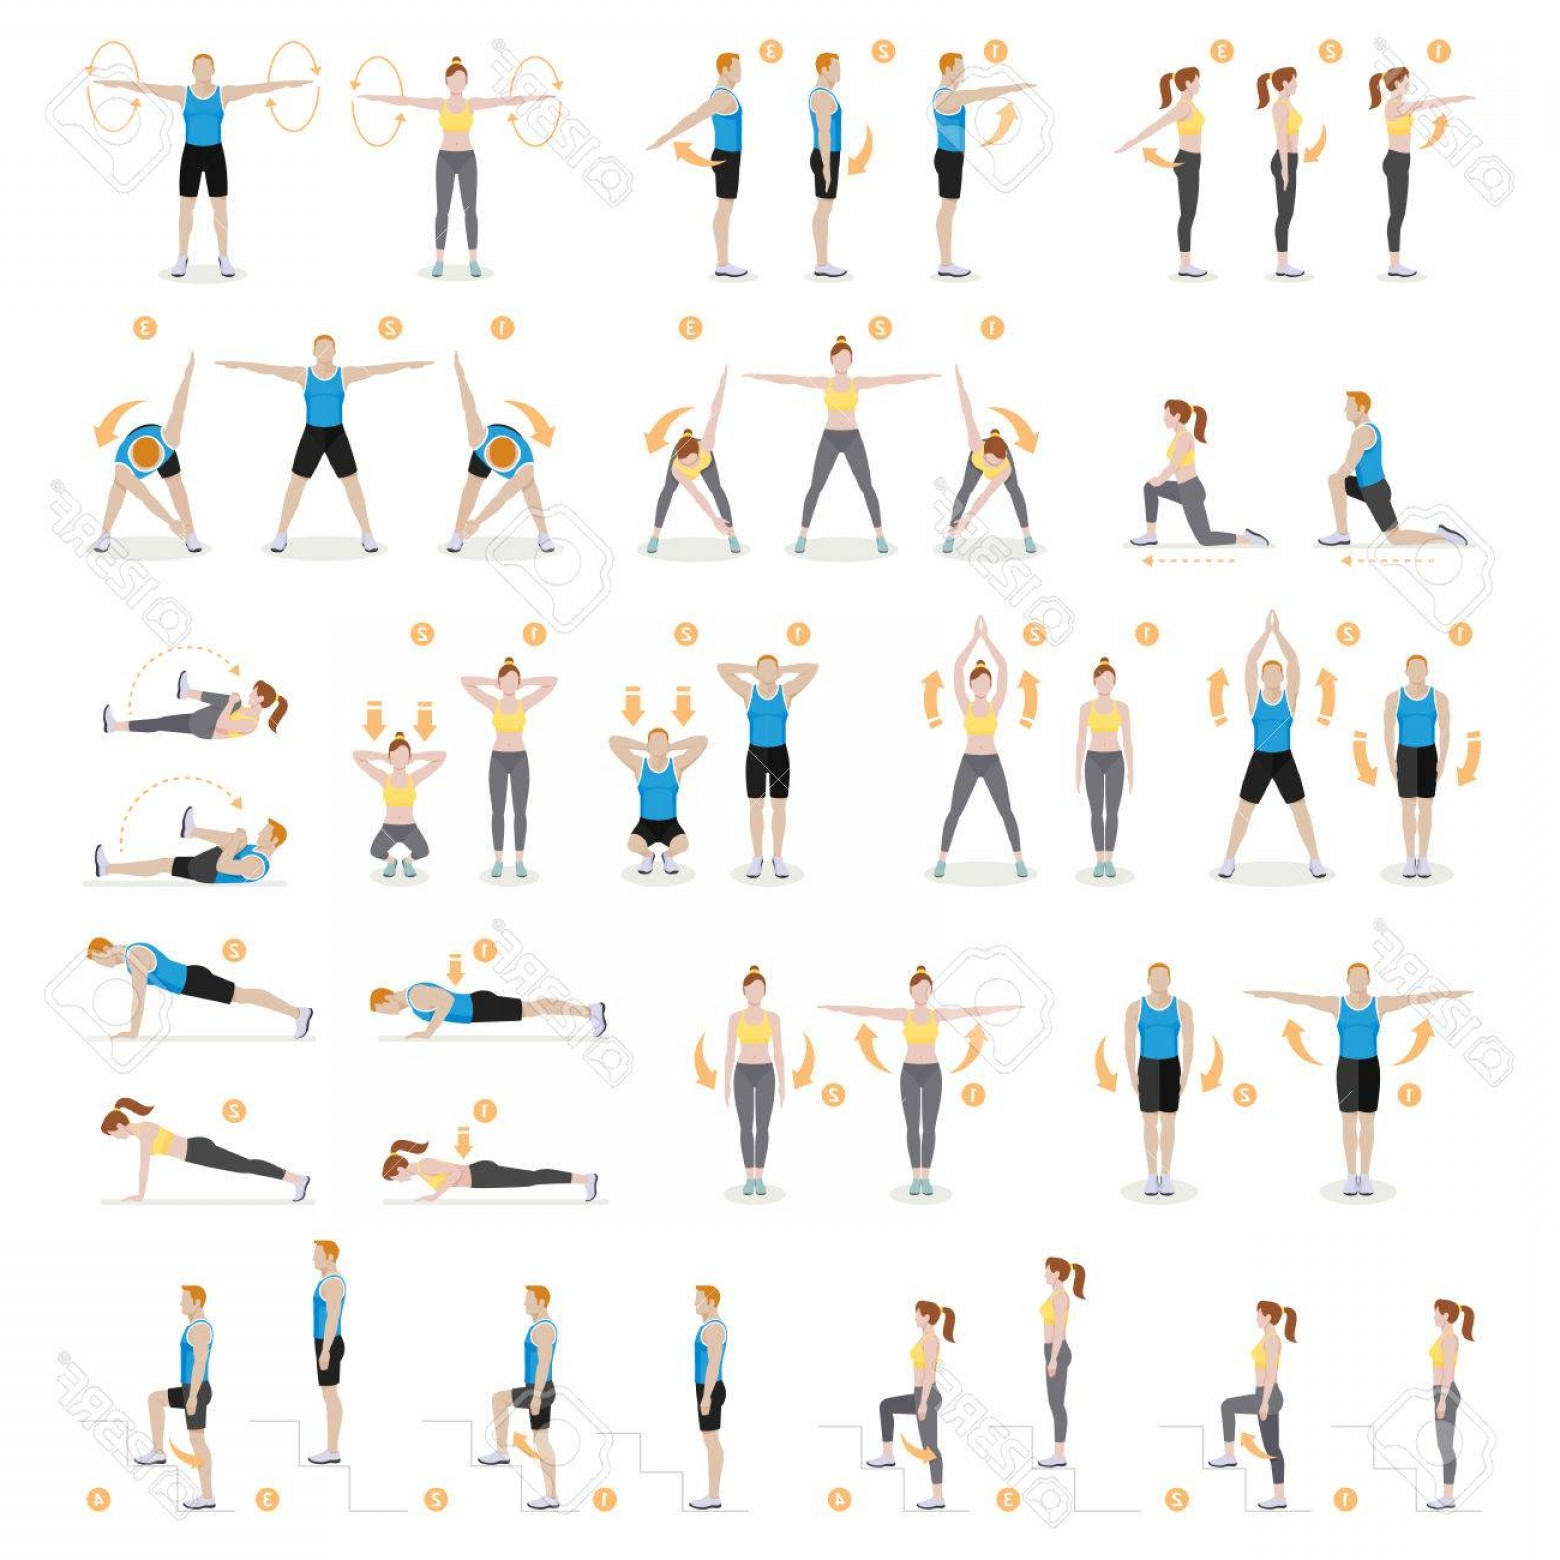 Man Vector Exercise: Photostock Vector Man And Woman Workout Fitness Aerobic And Exercises Vector Illustrations